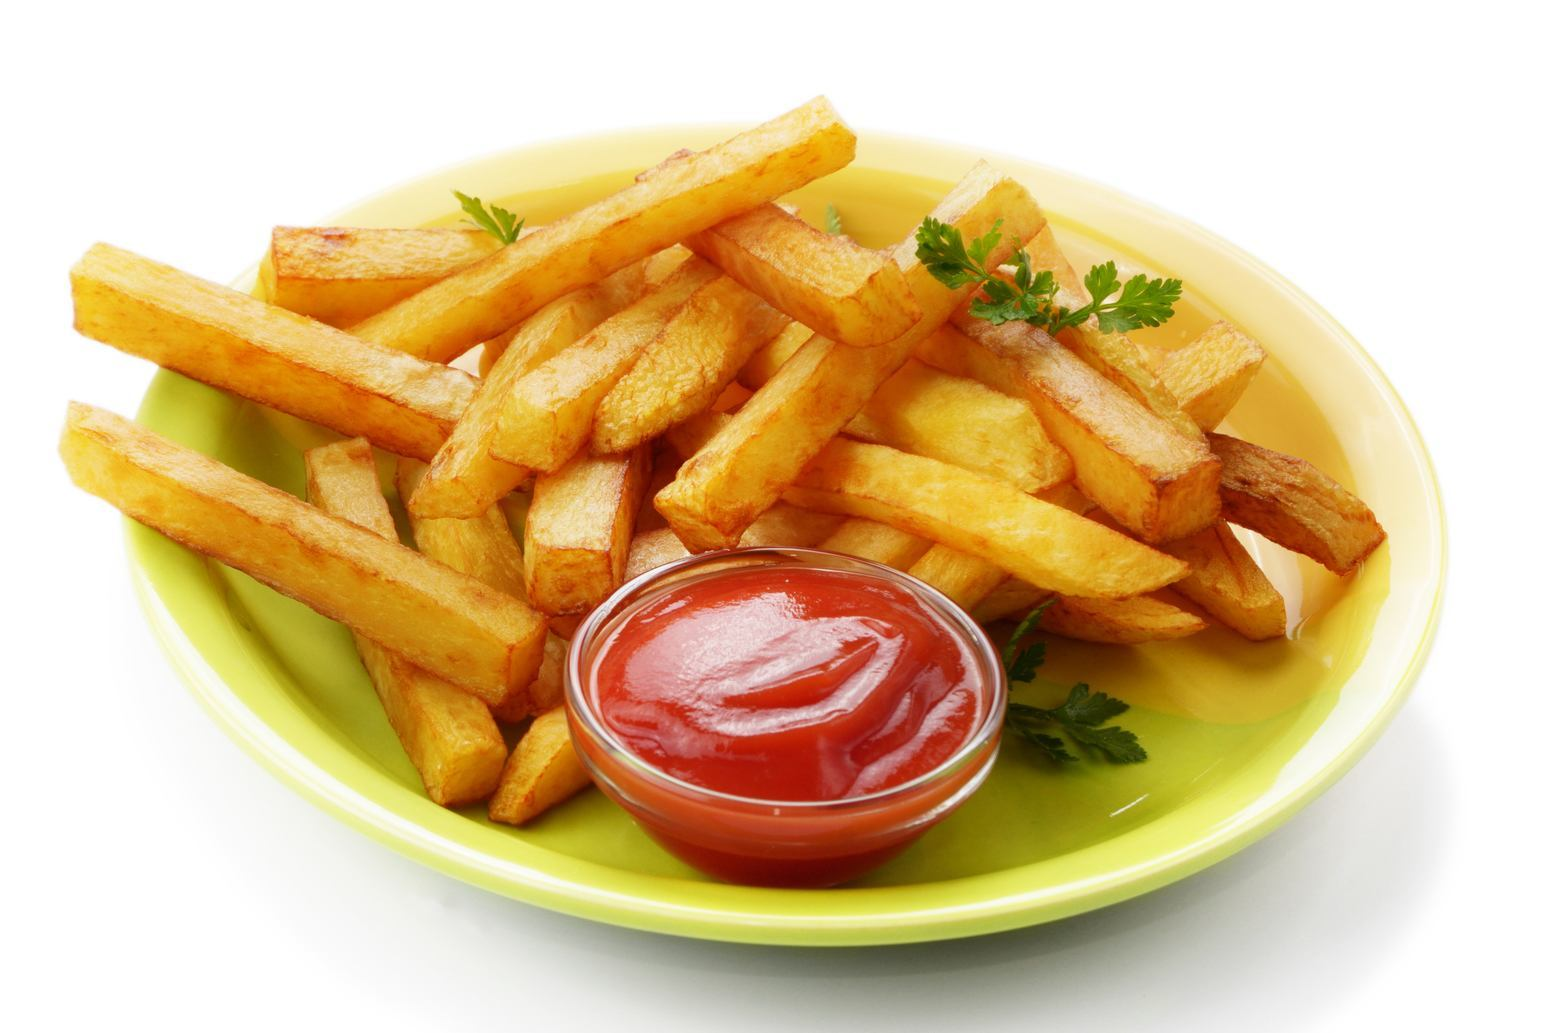 Hot Dog And Fries Calories